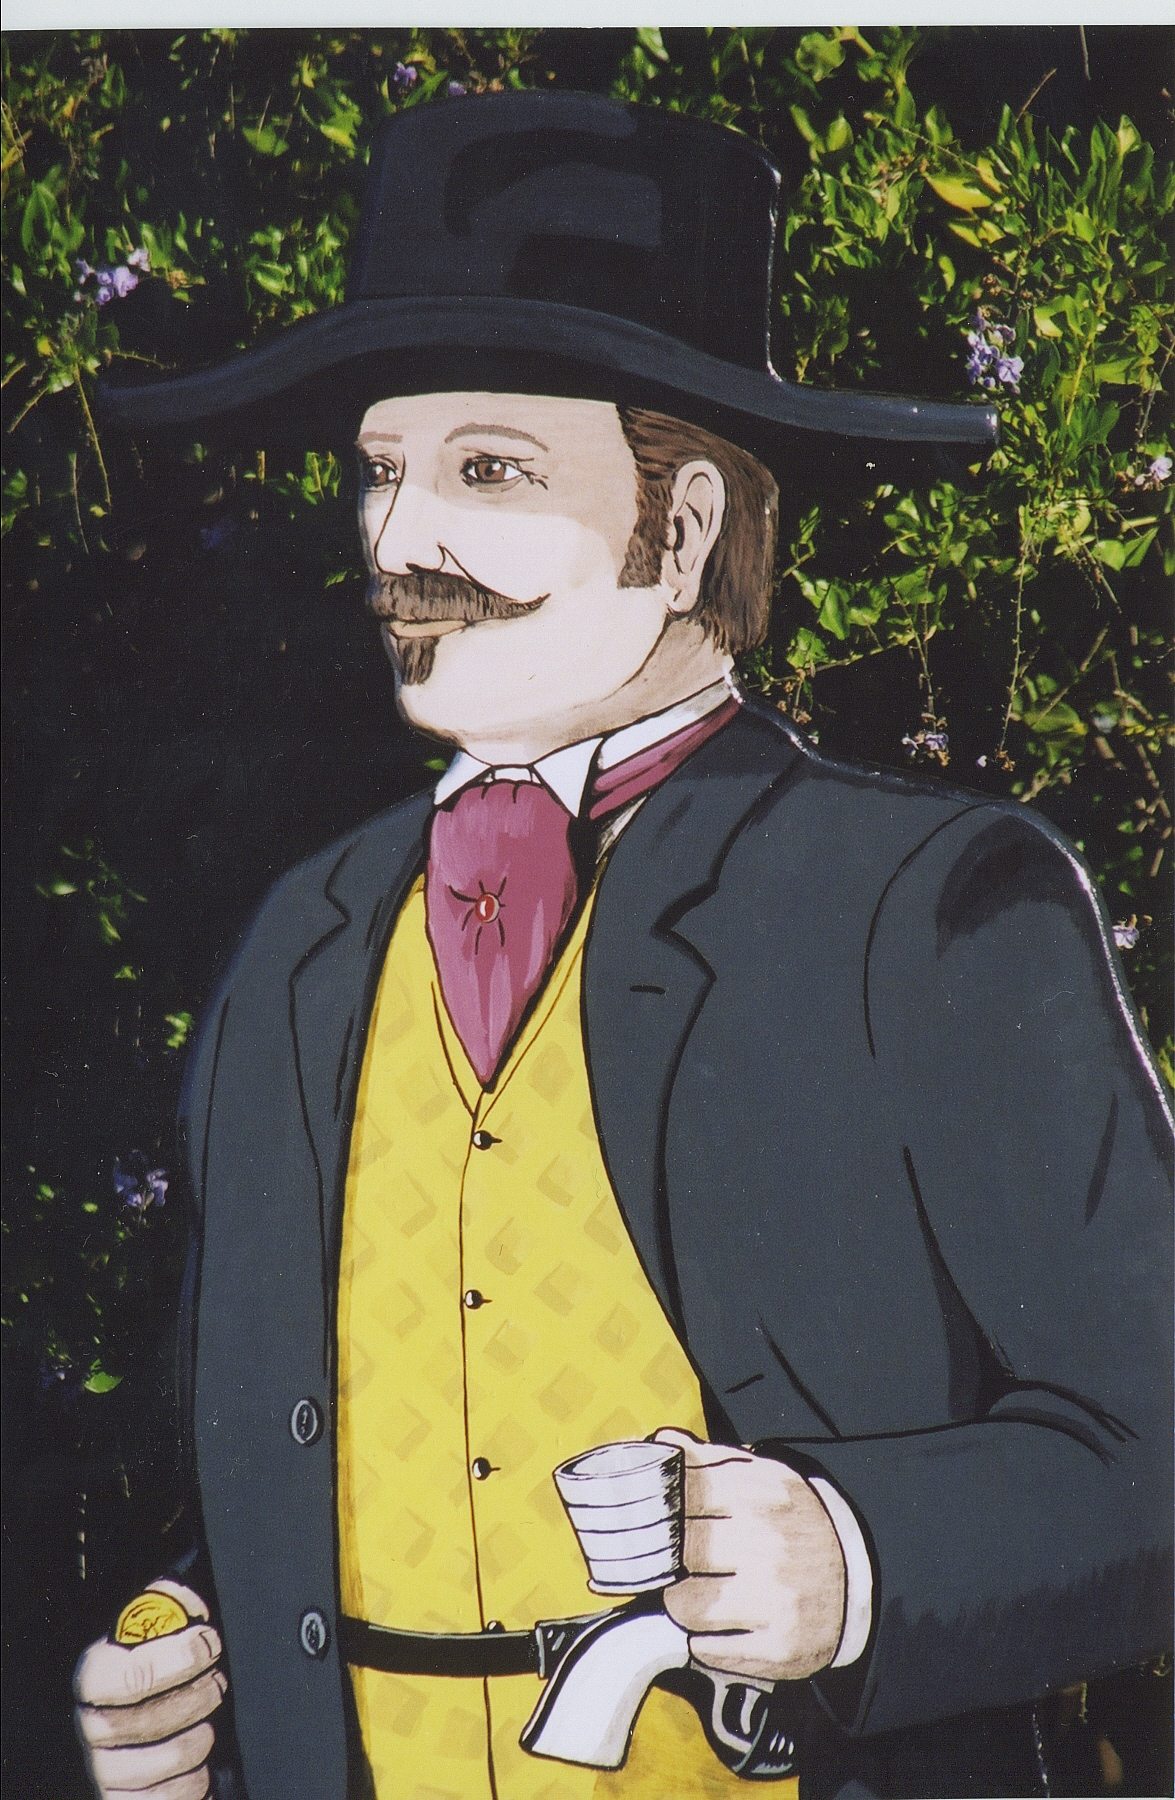 Lifesizecutout_western man valleycenterjuniorhigh.JPG